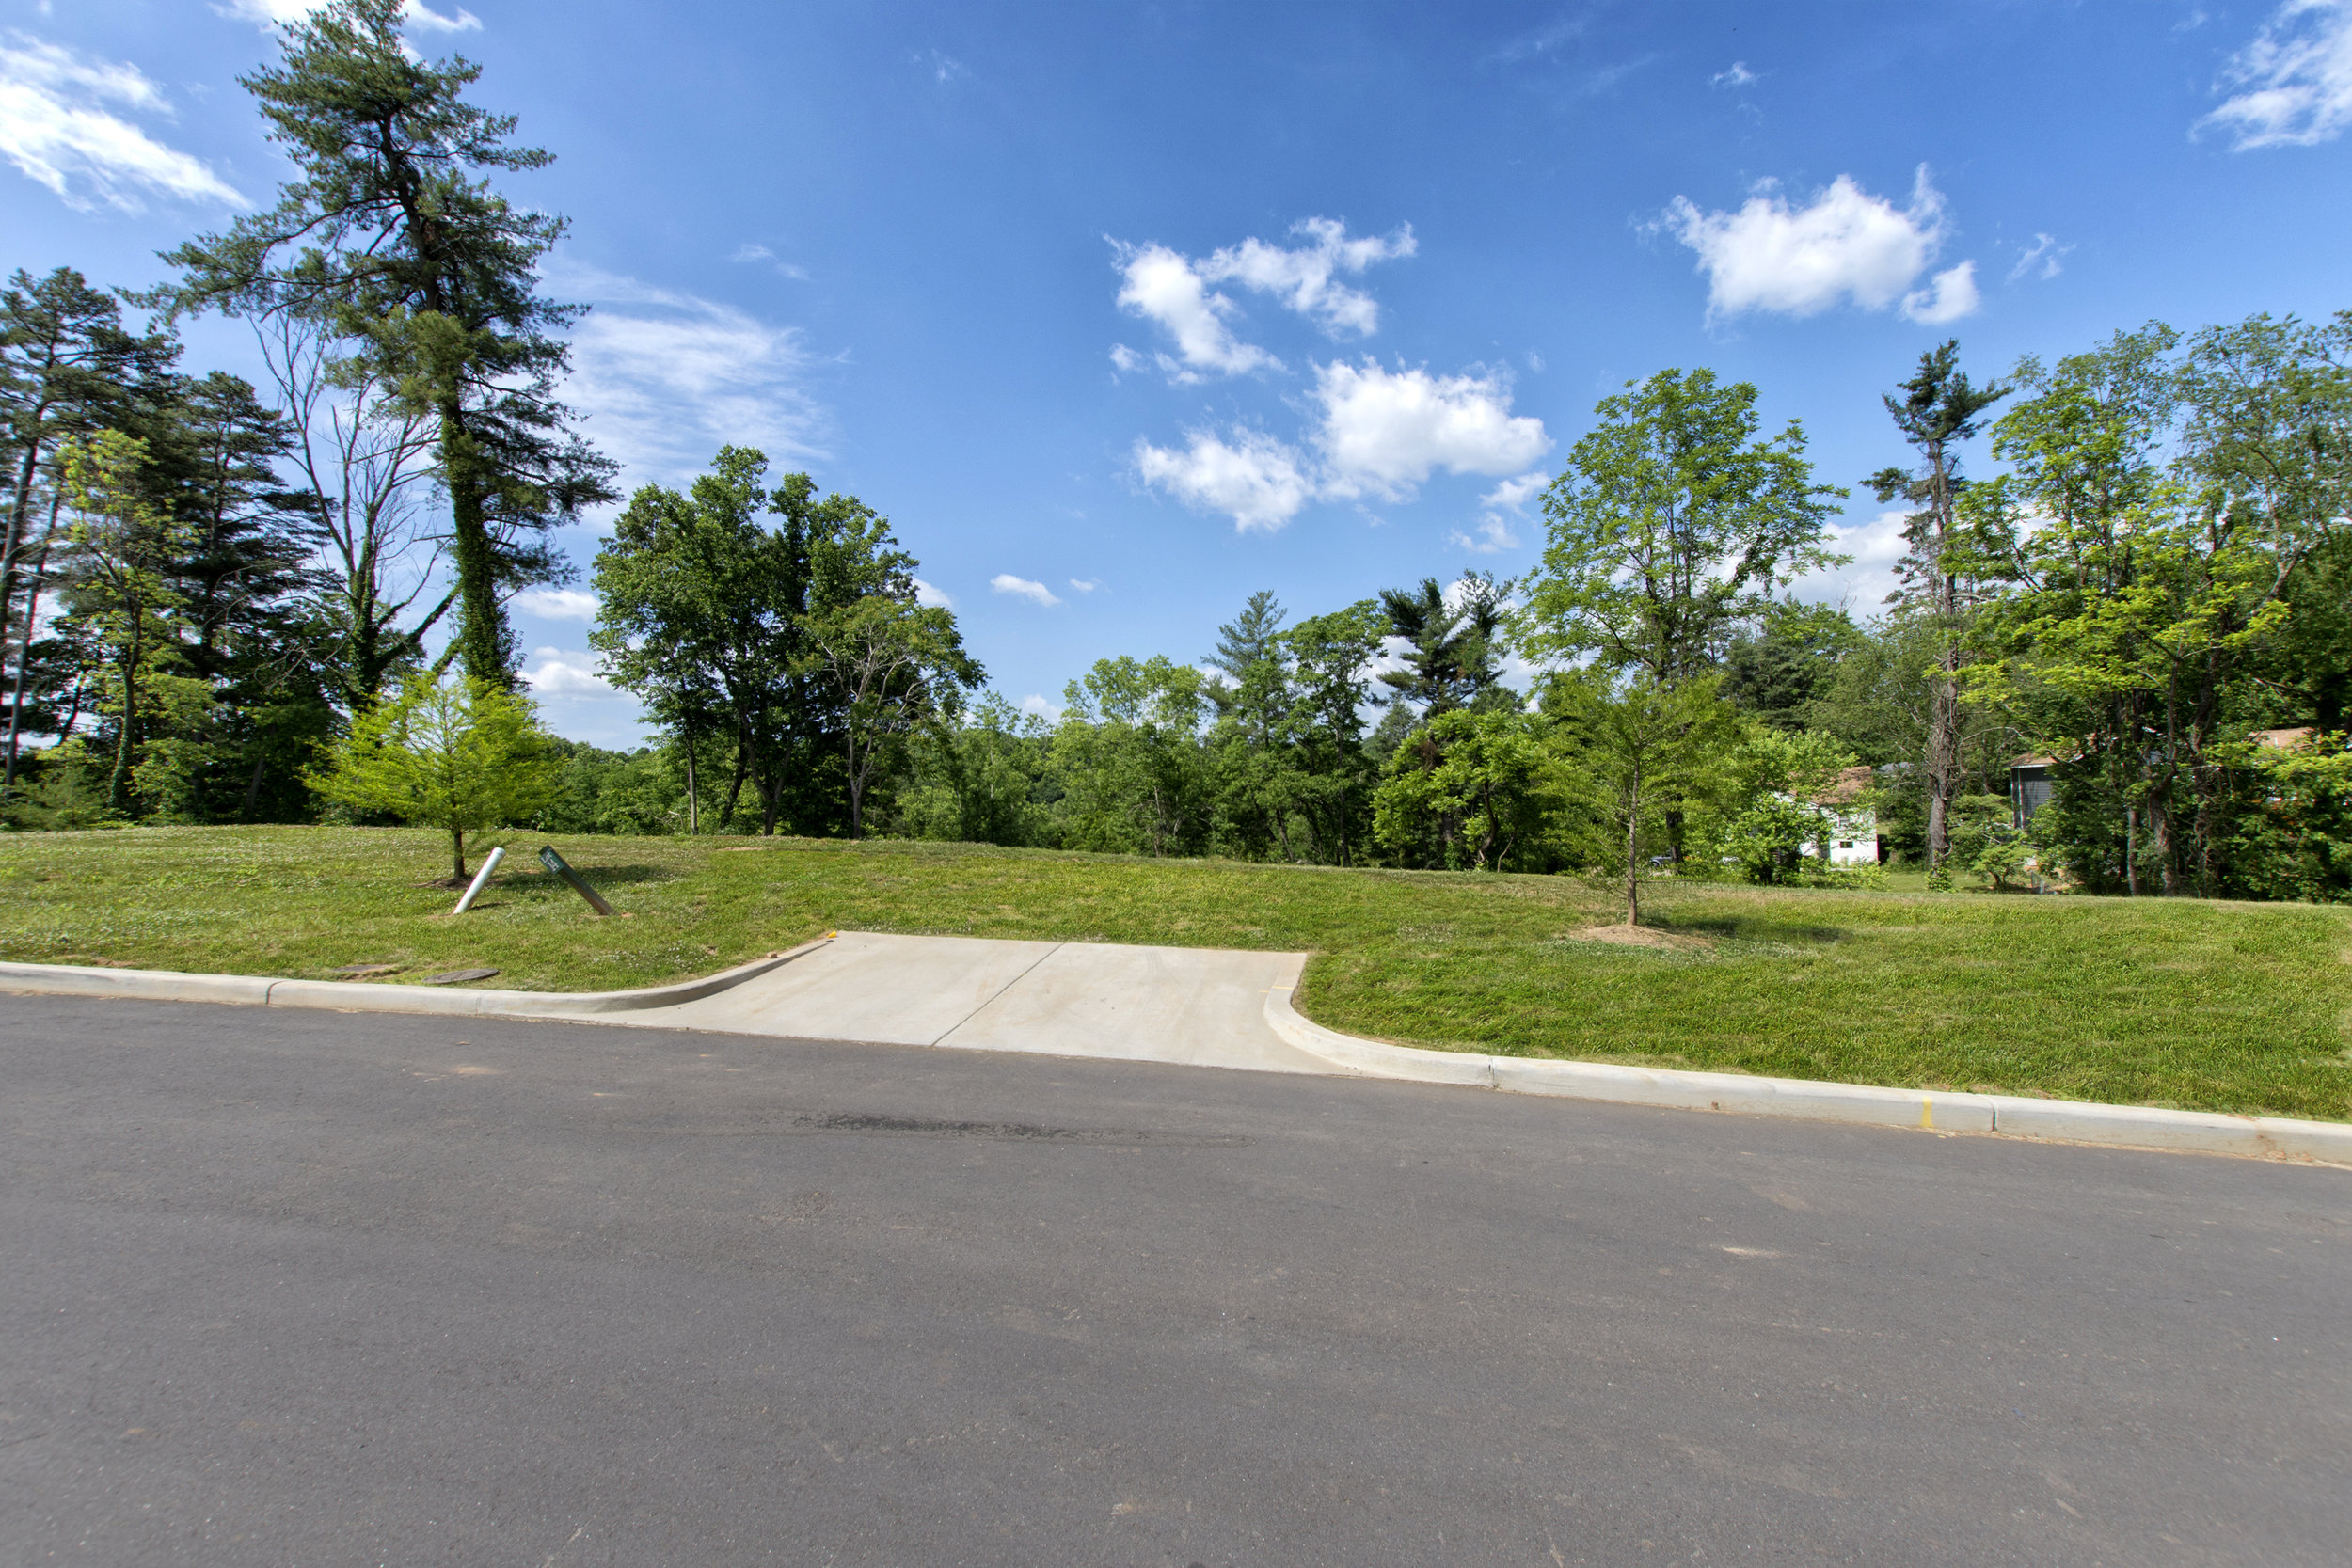 LOT 14 - 0.23 acres - $125K - Lot 14 features a level entrance with the land sloping downward toward the back of the lot, ideal for a home with a walkout basement. Sunset views possible from the back of your home. -